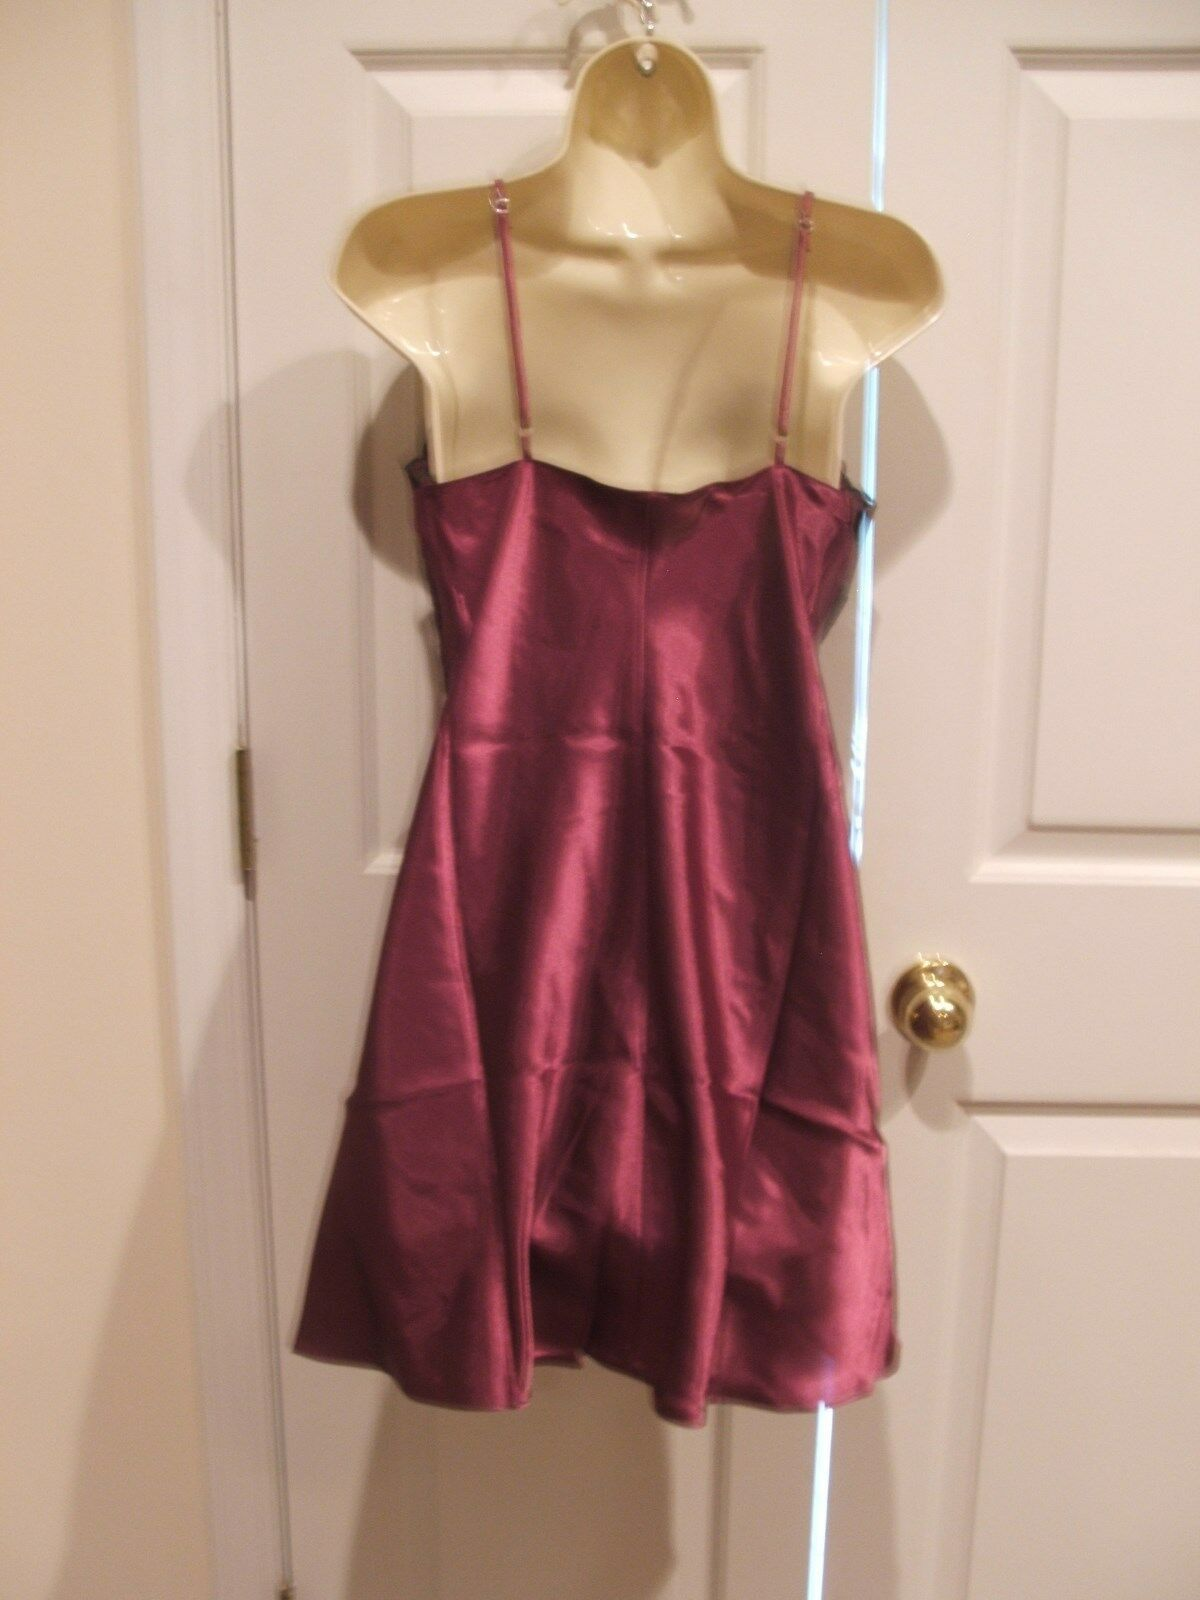 NEW IN PKG FREDERICK'S BURGUNDY/BLACK LACE SATIN GOWN SIZE MED